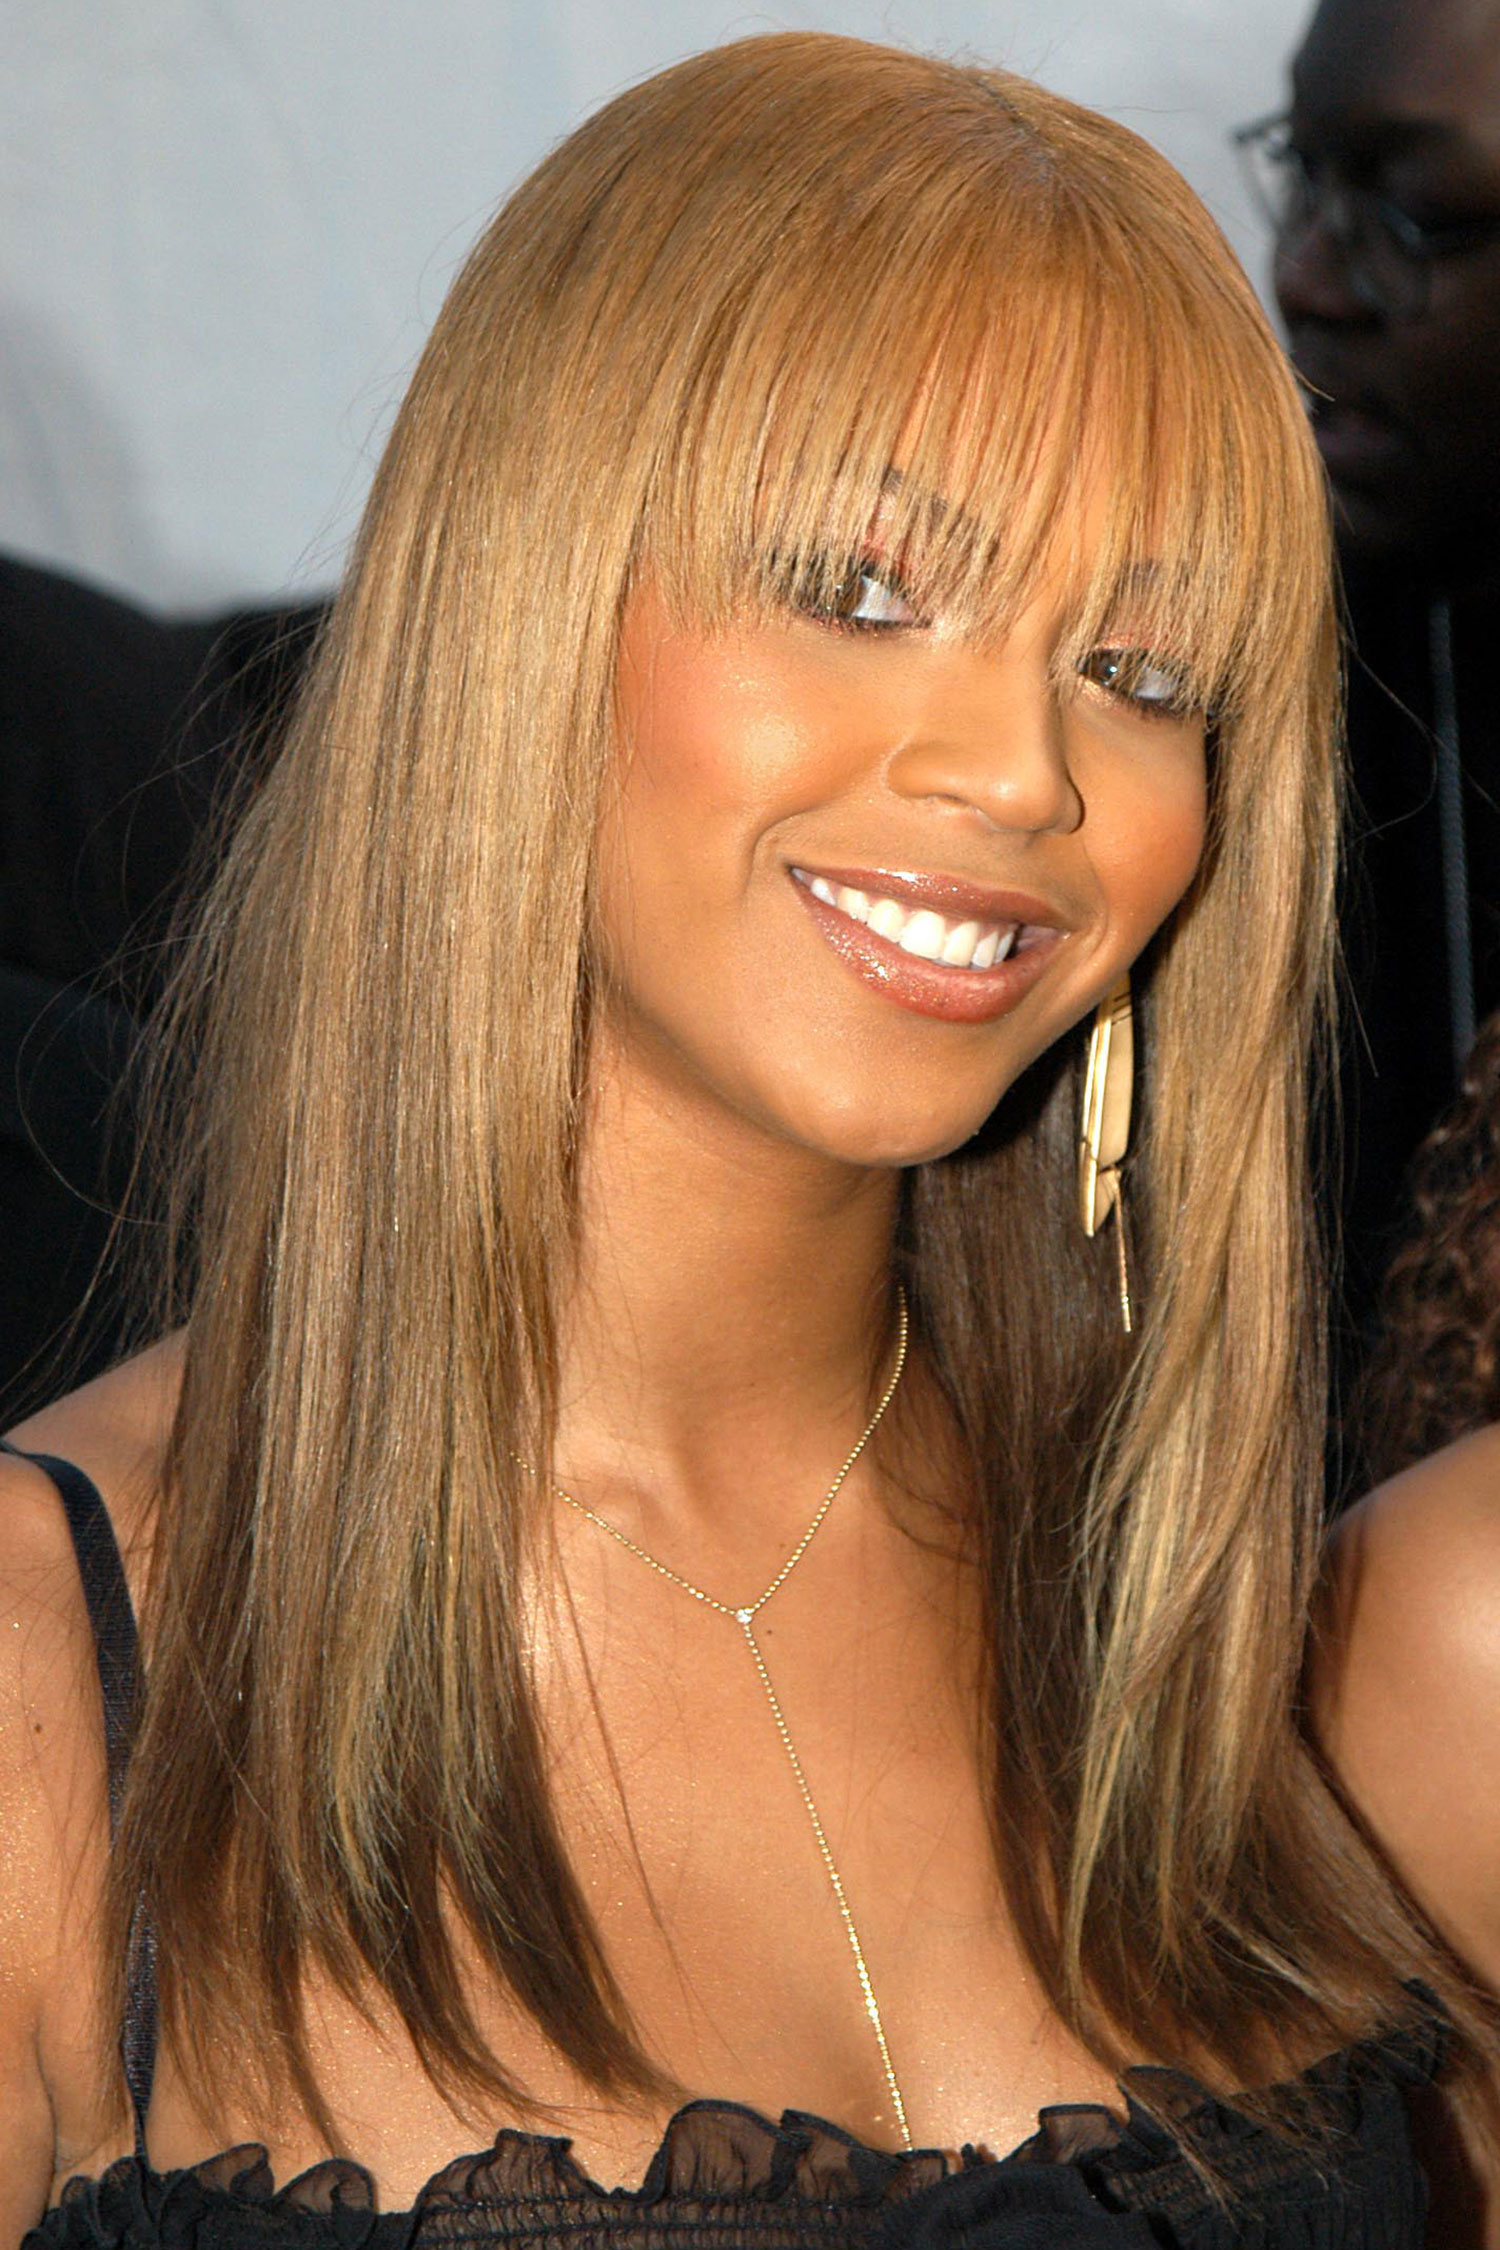 Tremendous 40 Beyonce Hairstyles Beyonce39S Real Hair Long Hair And Short Short Hairstyles For Black Women Fulllsitofus